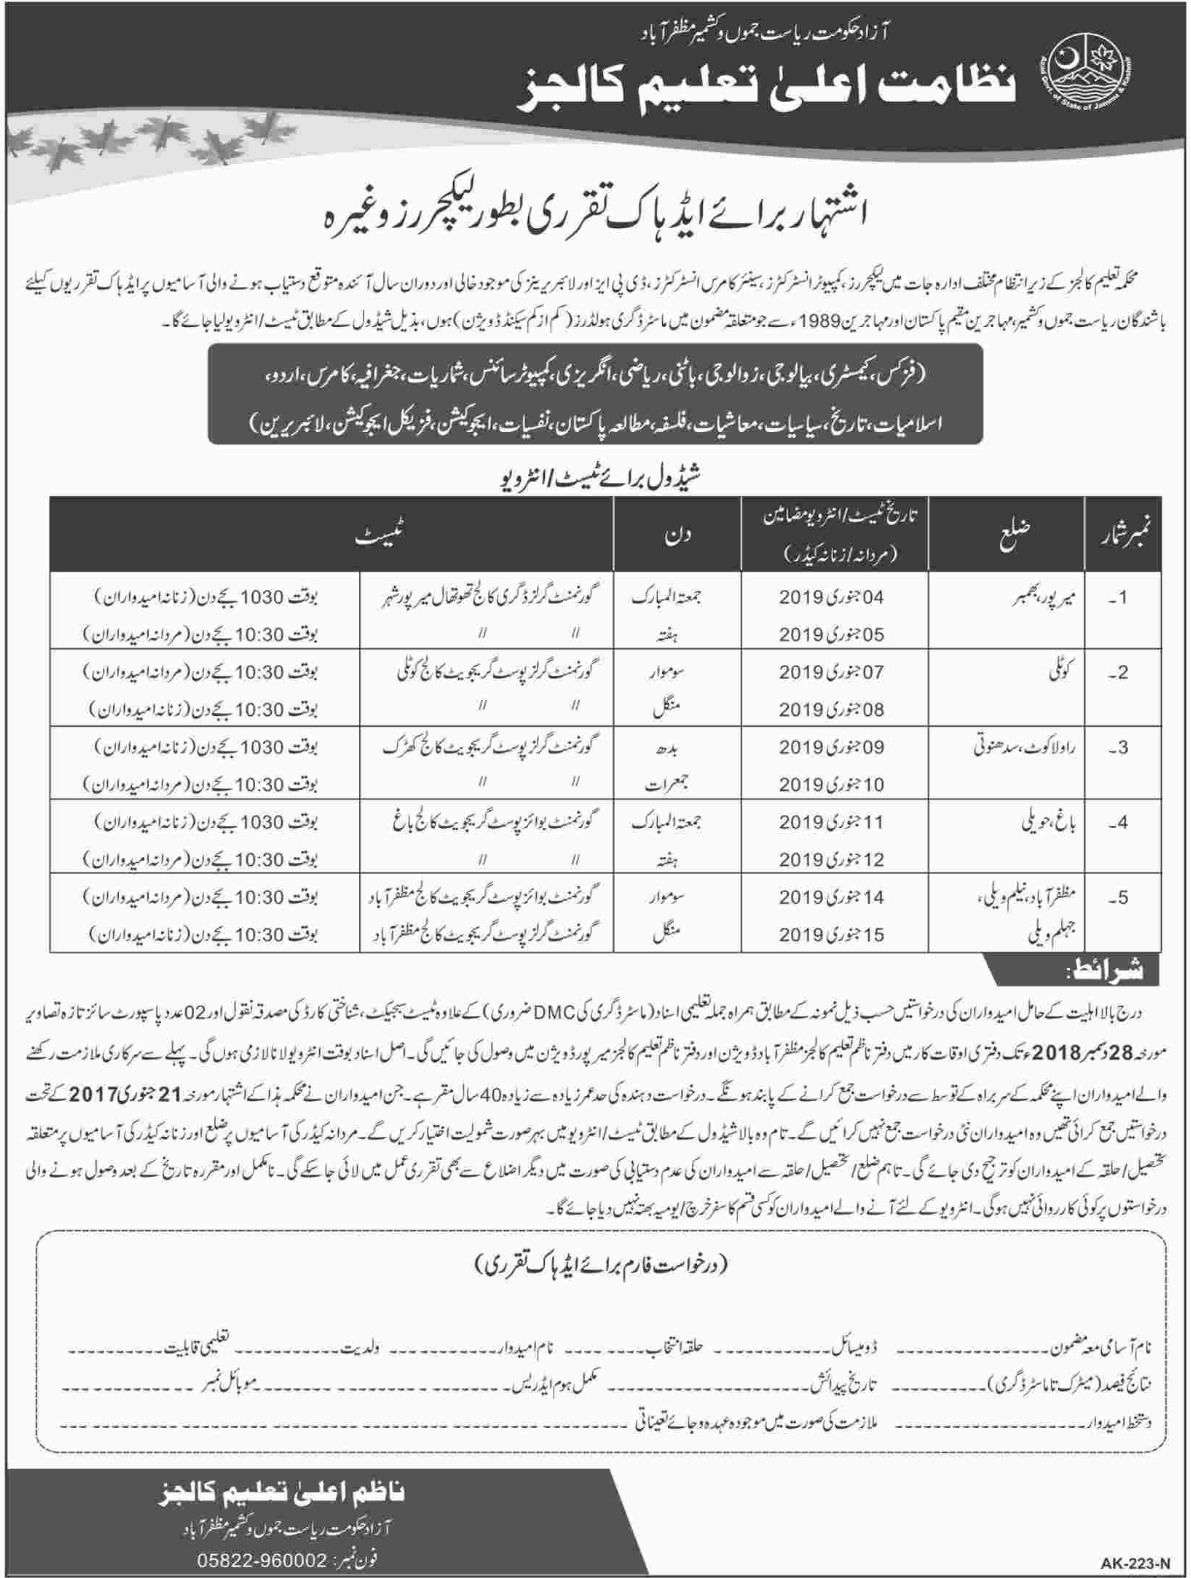 Higher Education Department Colleges AJK Jobs 2018